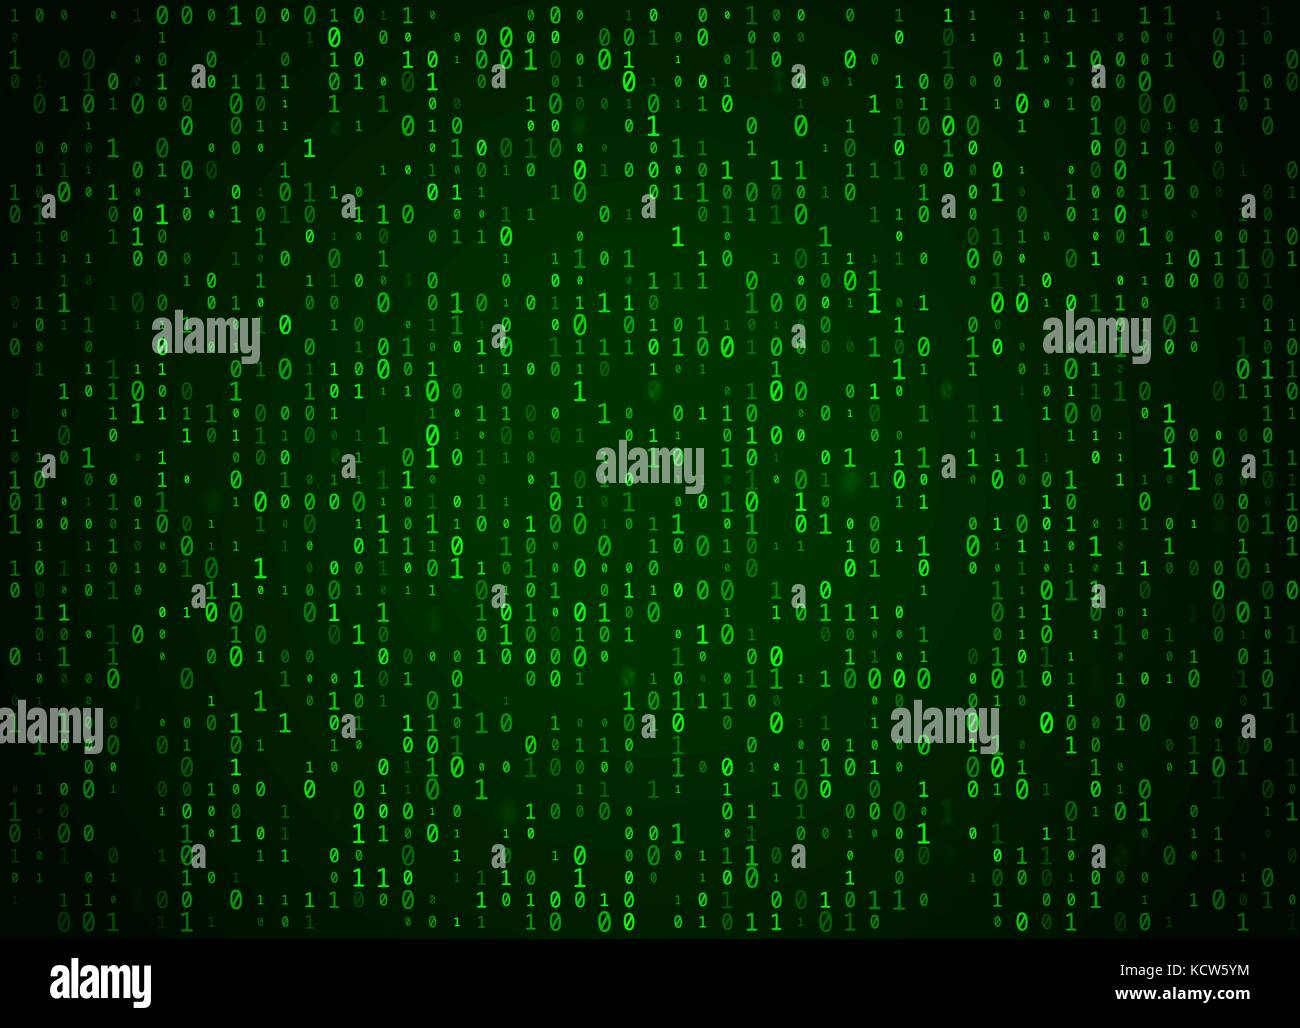 Vector binary code green background. Big data and programming hacking, deep decryption and encryption, computer - Stock Image